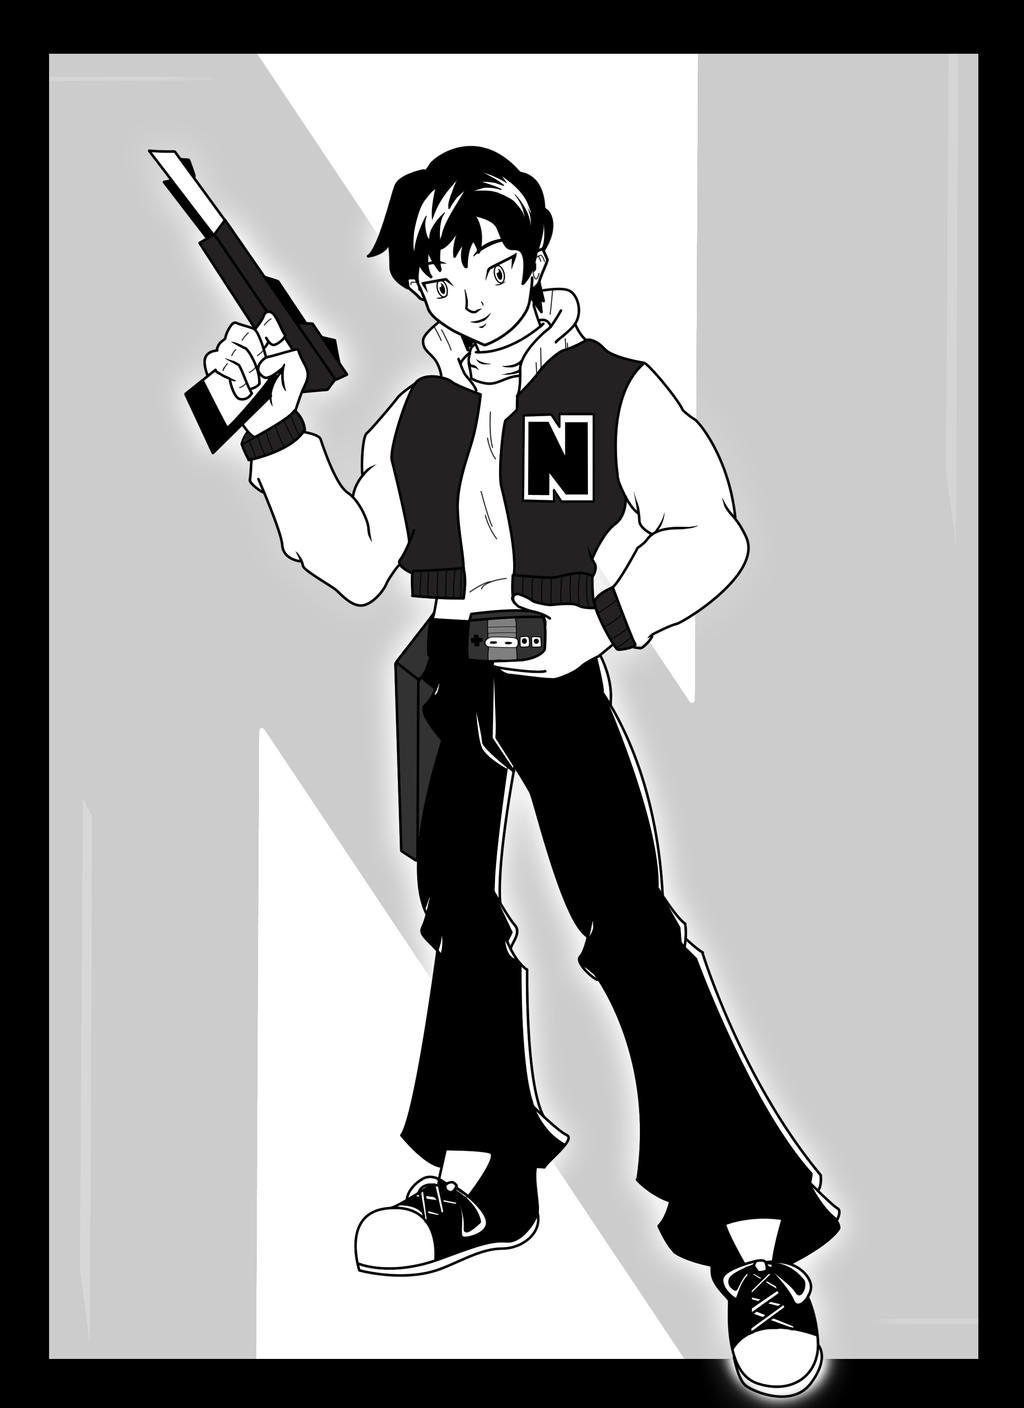 Captain N The Game Master Kevin Keene Inks By Nesgate On Deviantart